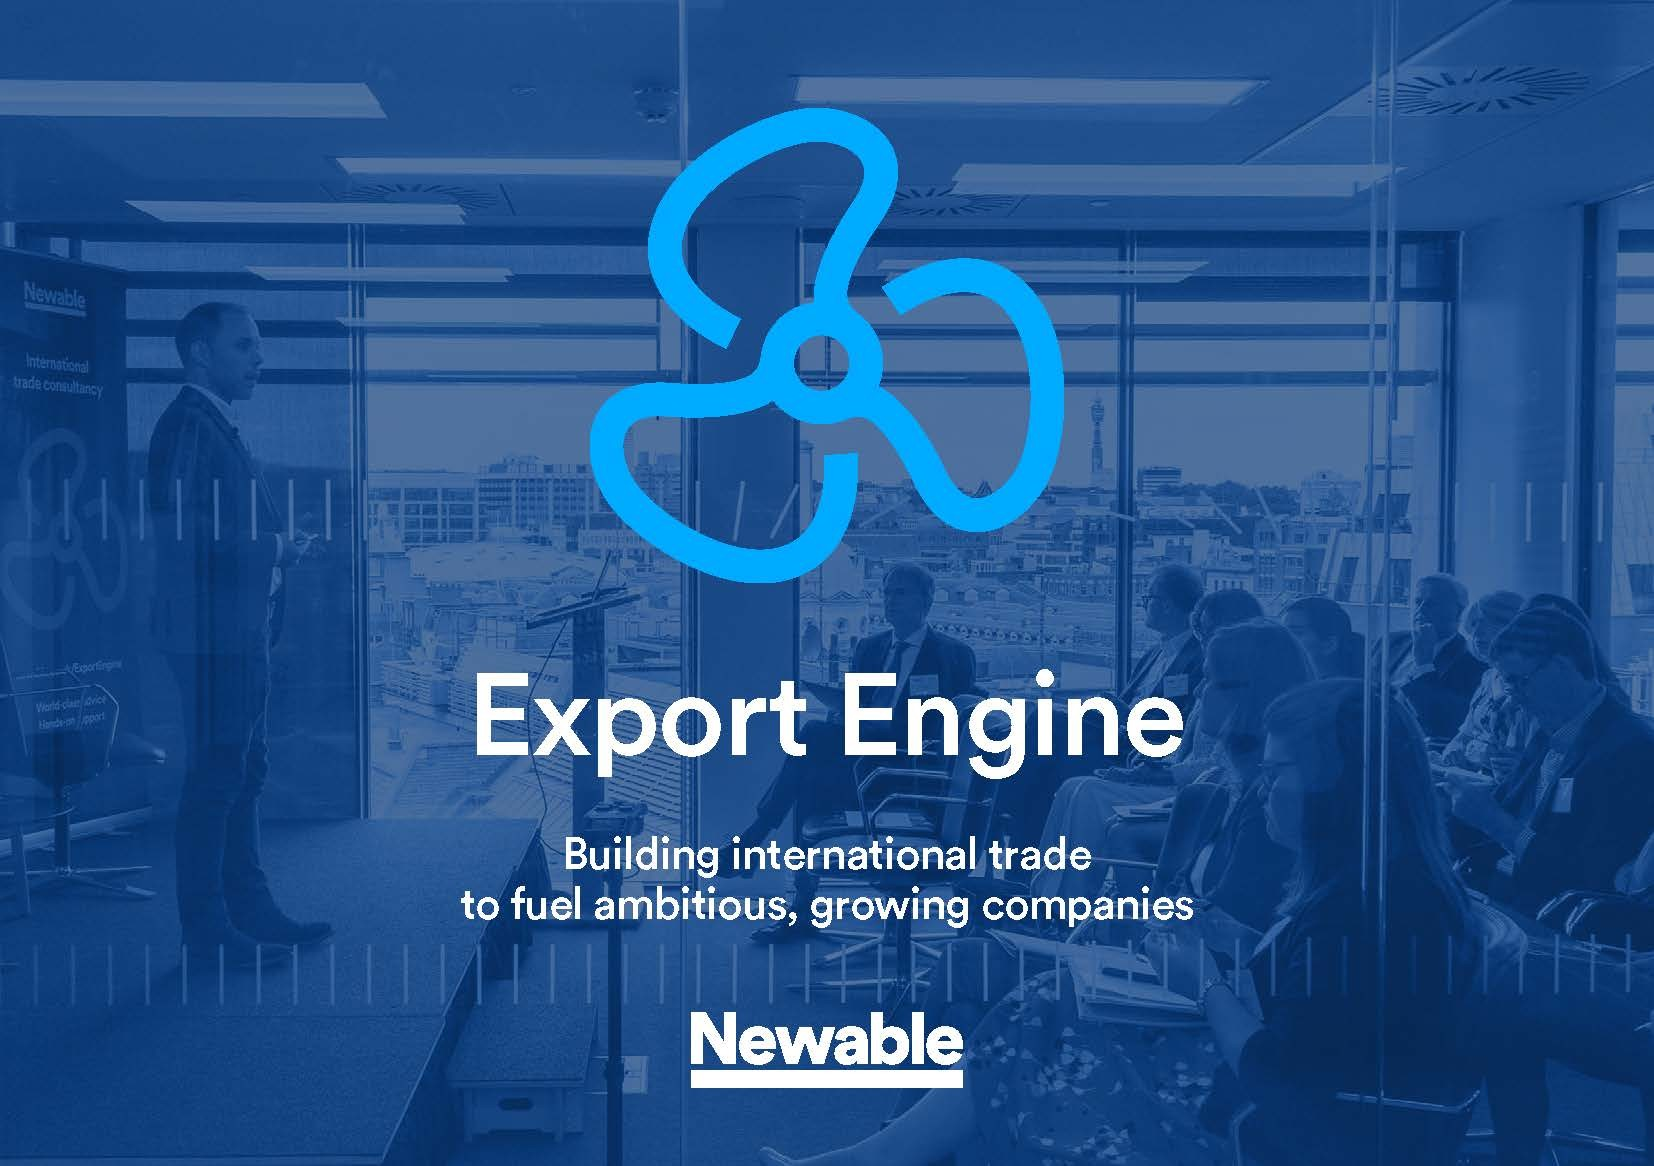 Export Engine Revs Up